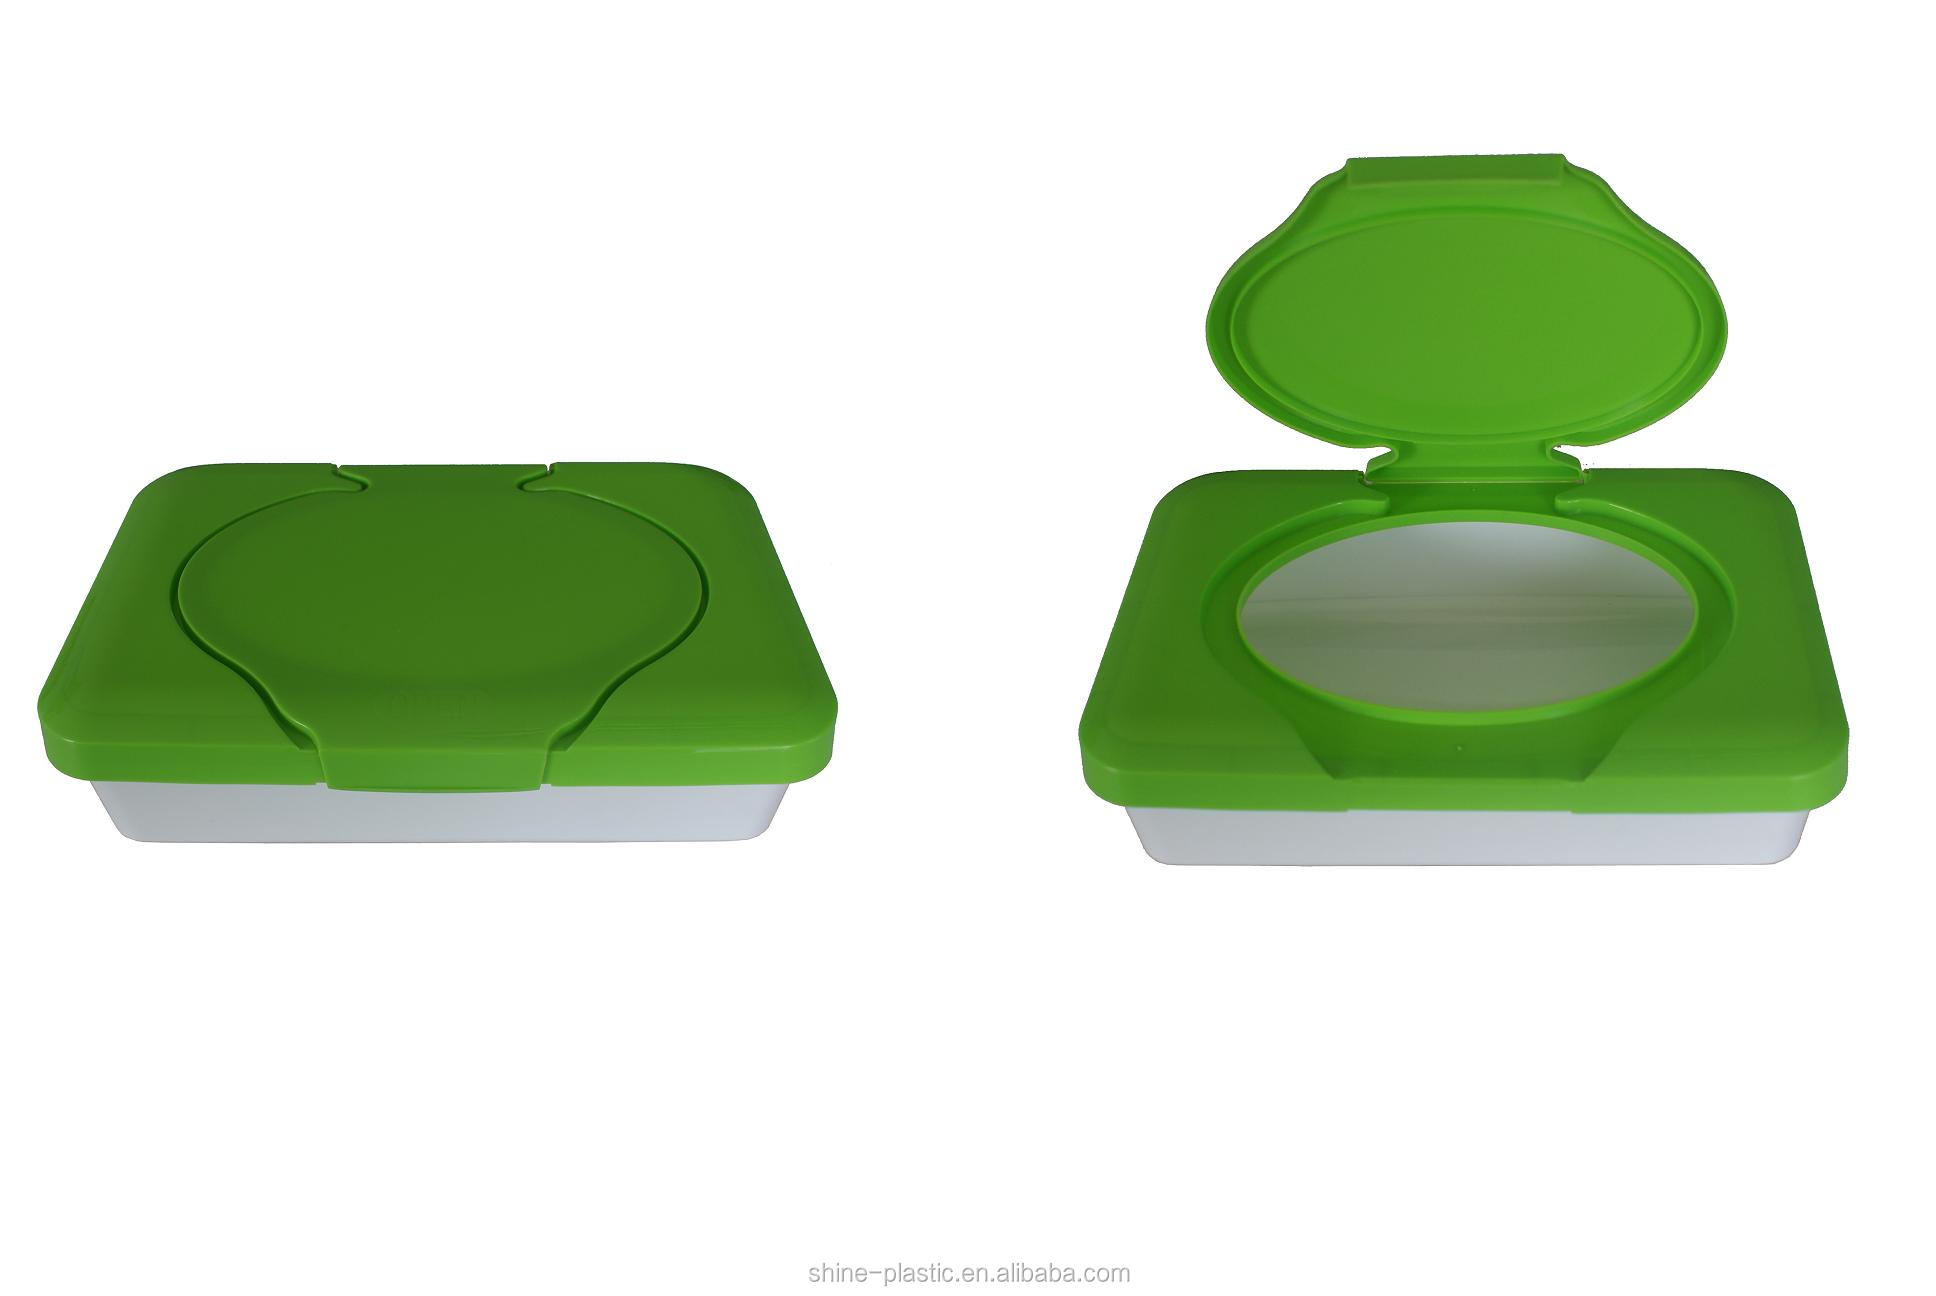 plastic box for wet wipes ITEM017